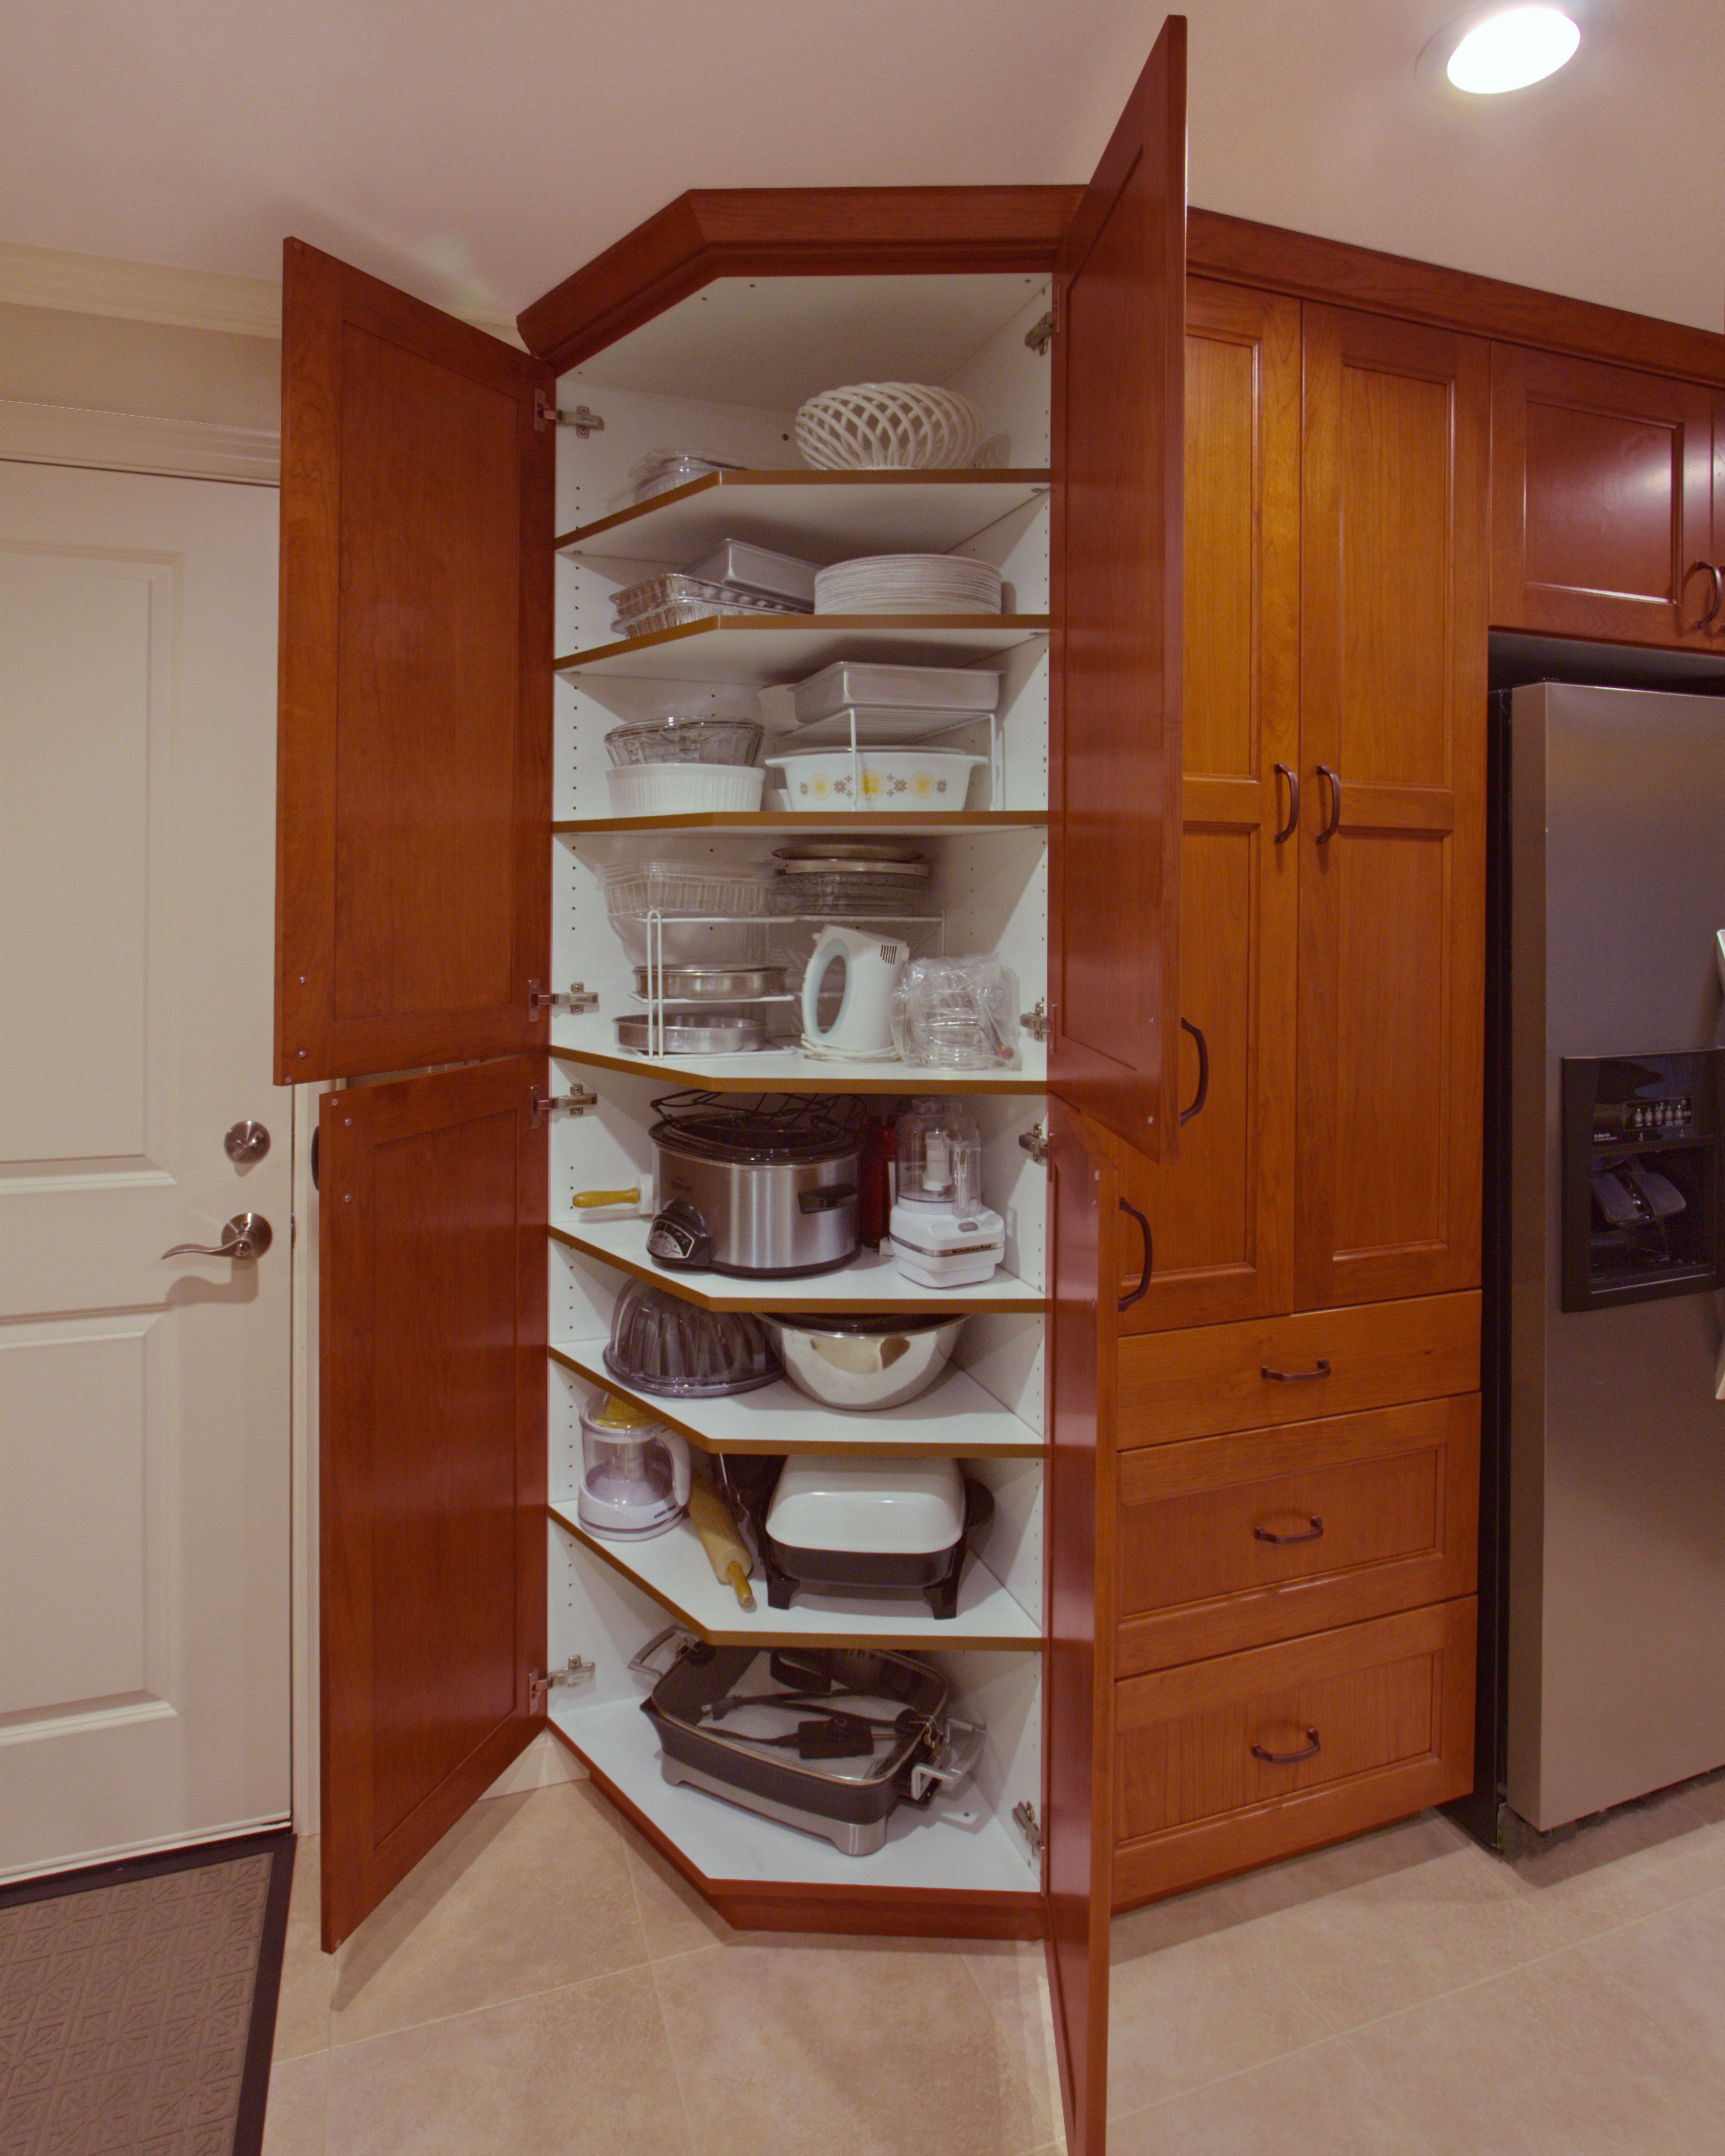 Kitchen Pantry Storage Solutions: Angled Pantry Anyone? Esthetics And Functionality All In